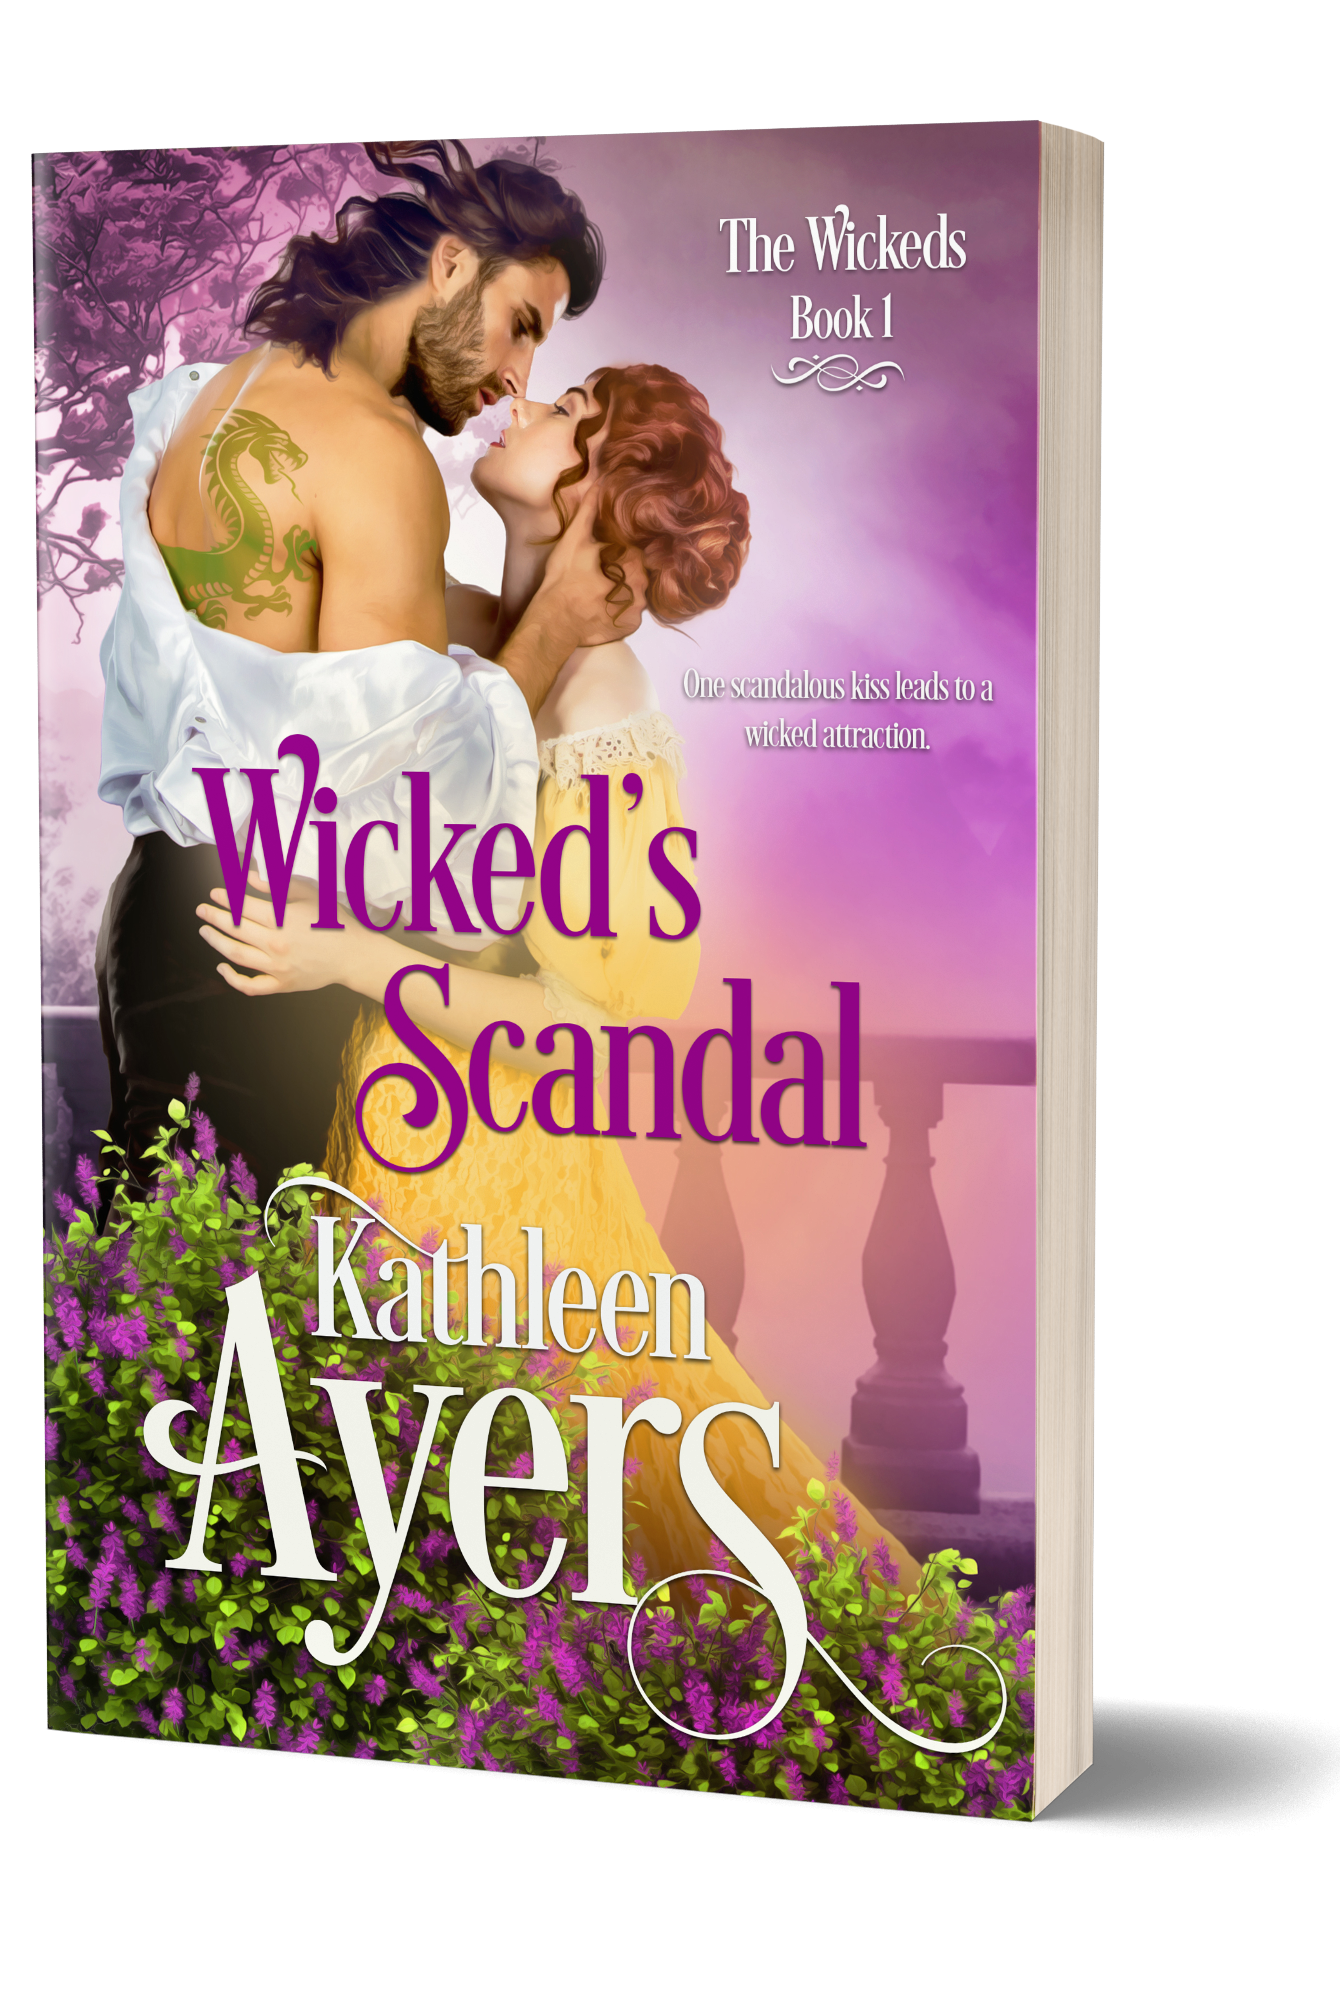 Wickeds Scandal PP